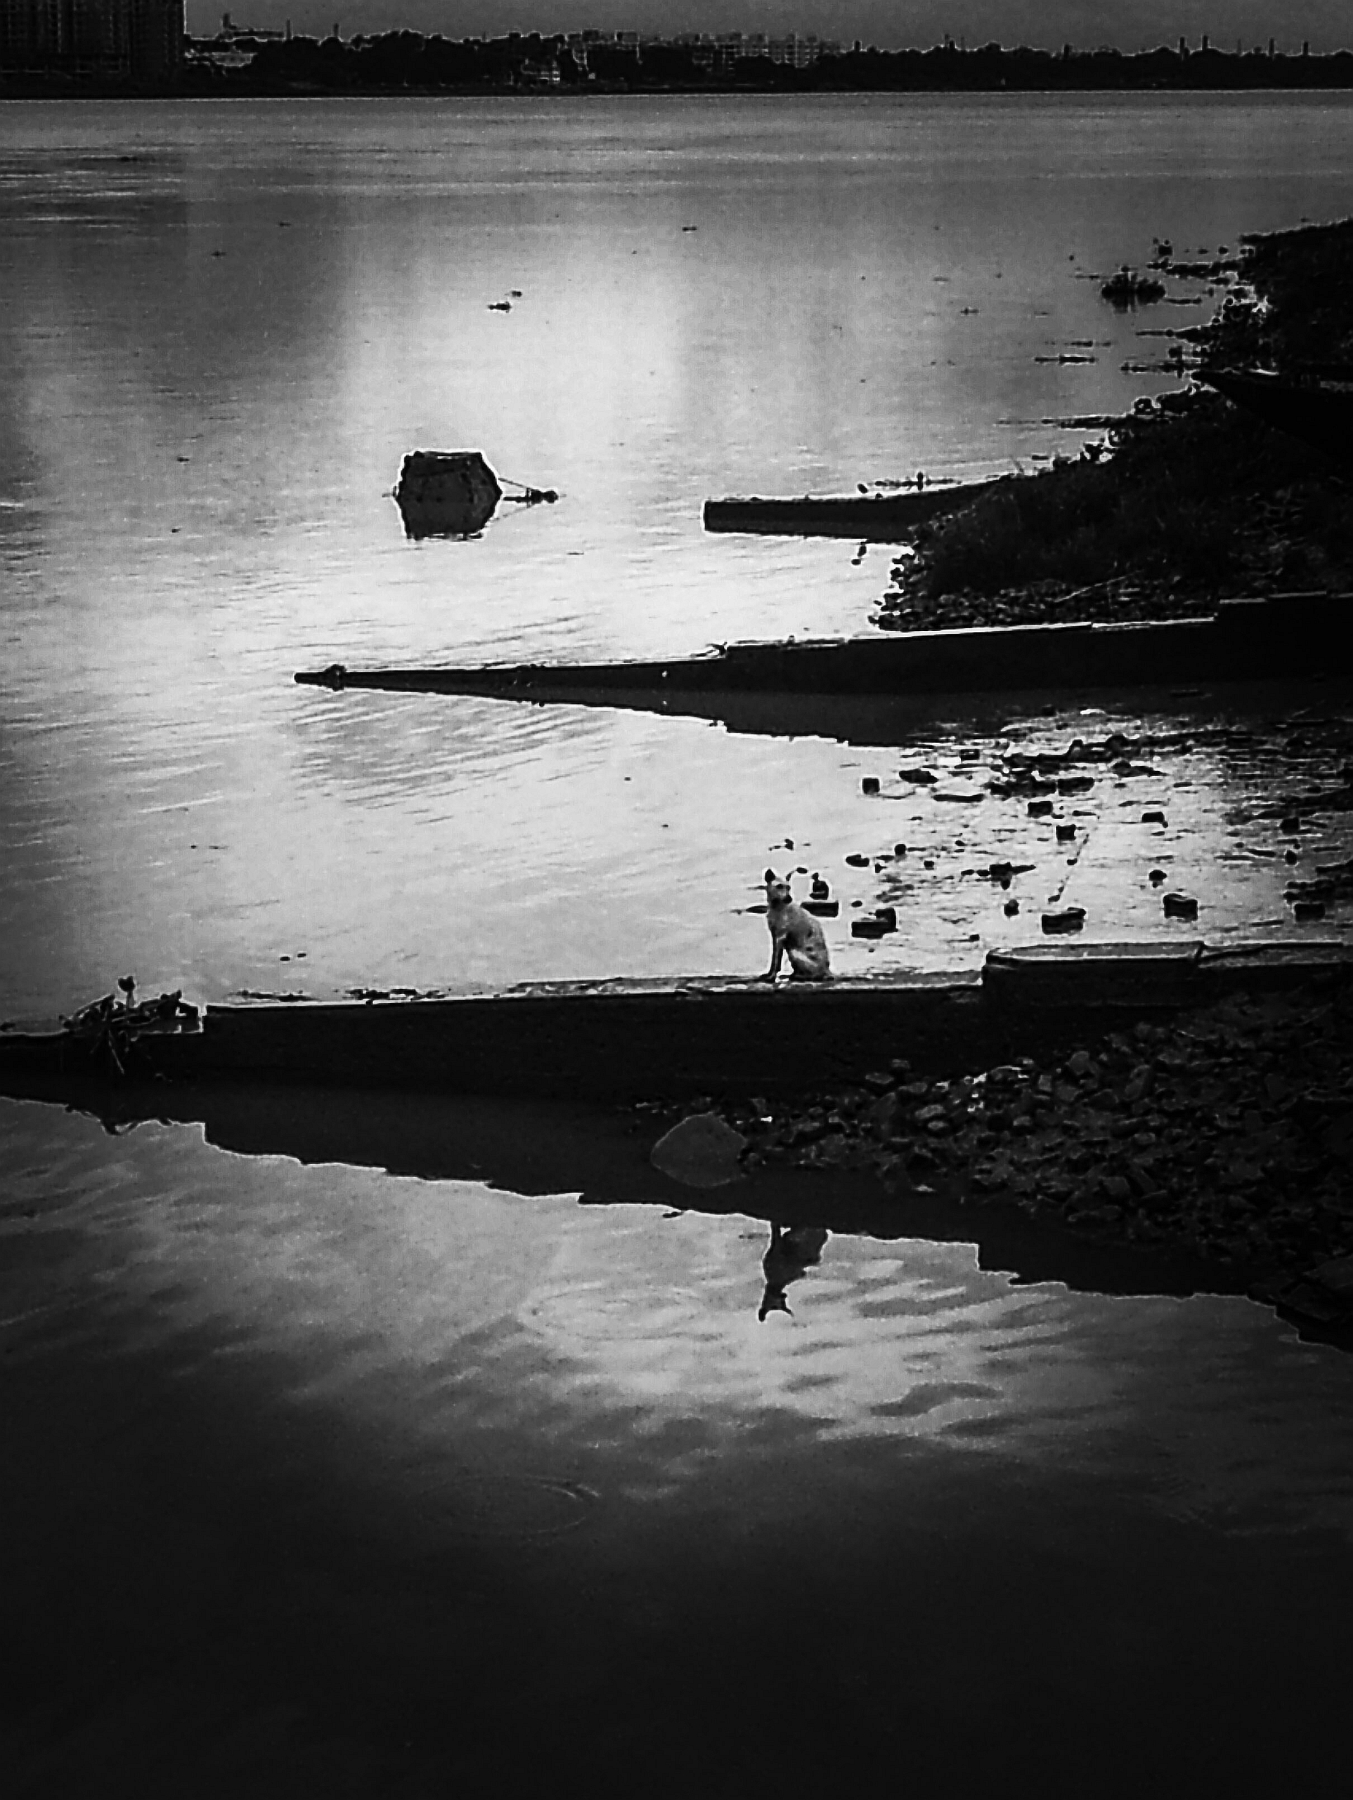 ... a street dog looks back on the river bank at the ferry ghat as if looking for someone to take him across ...